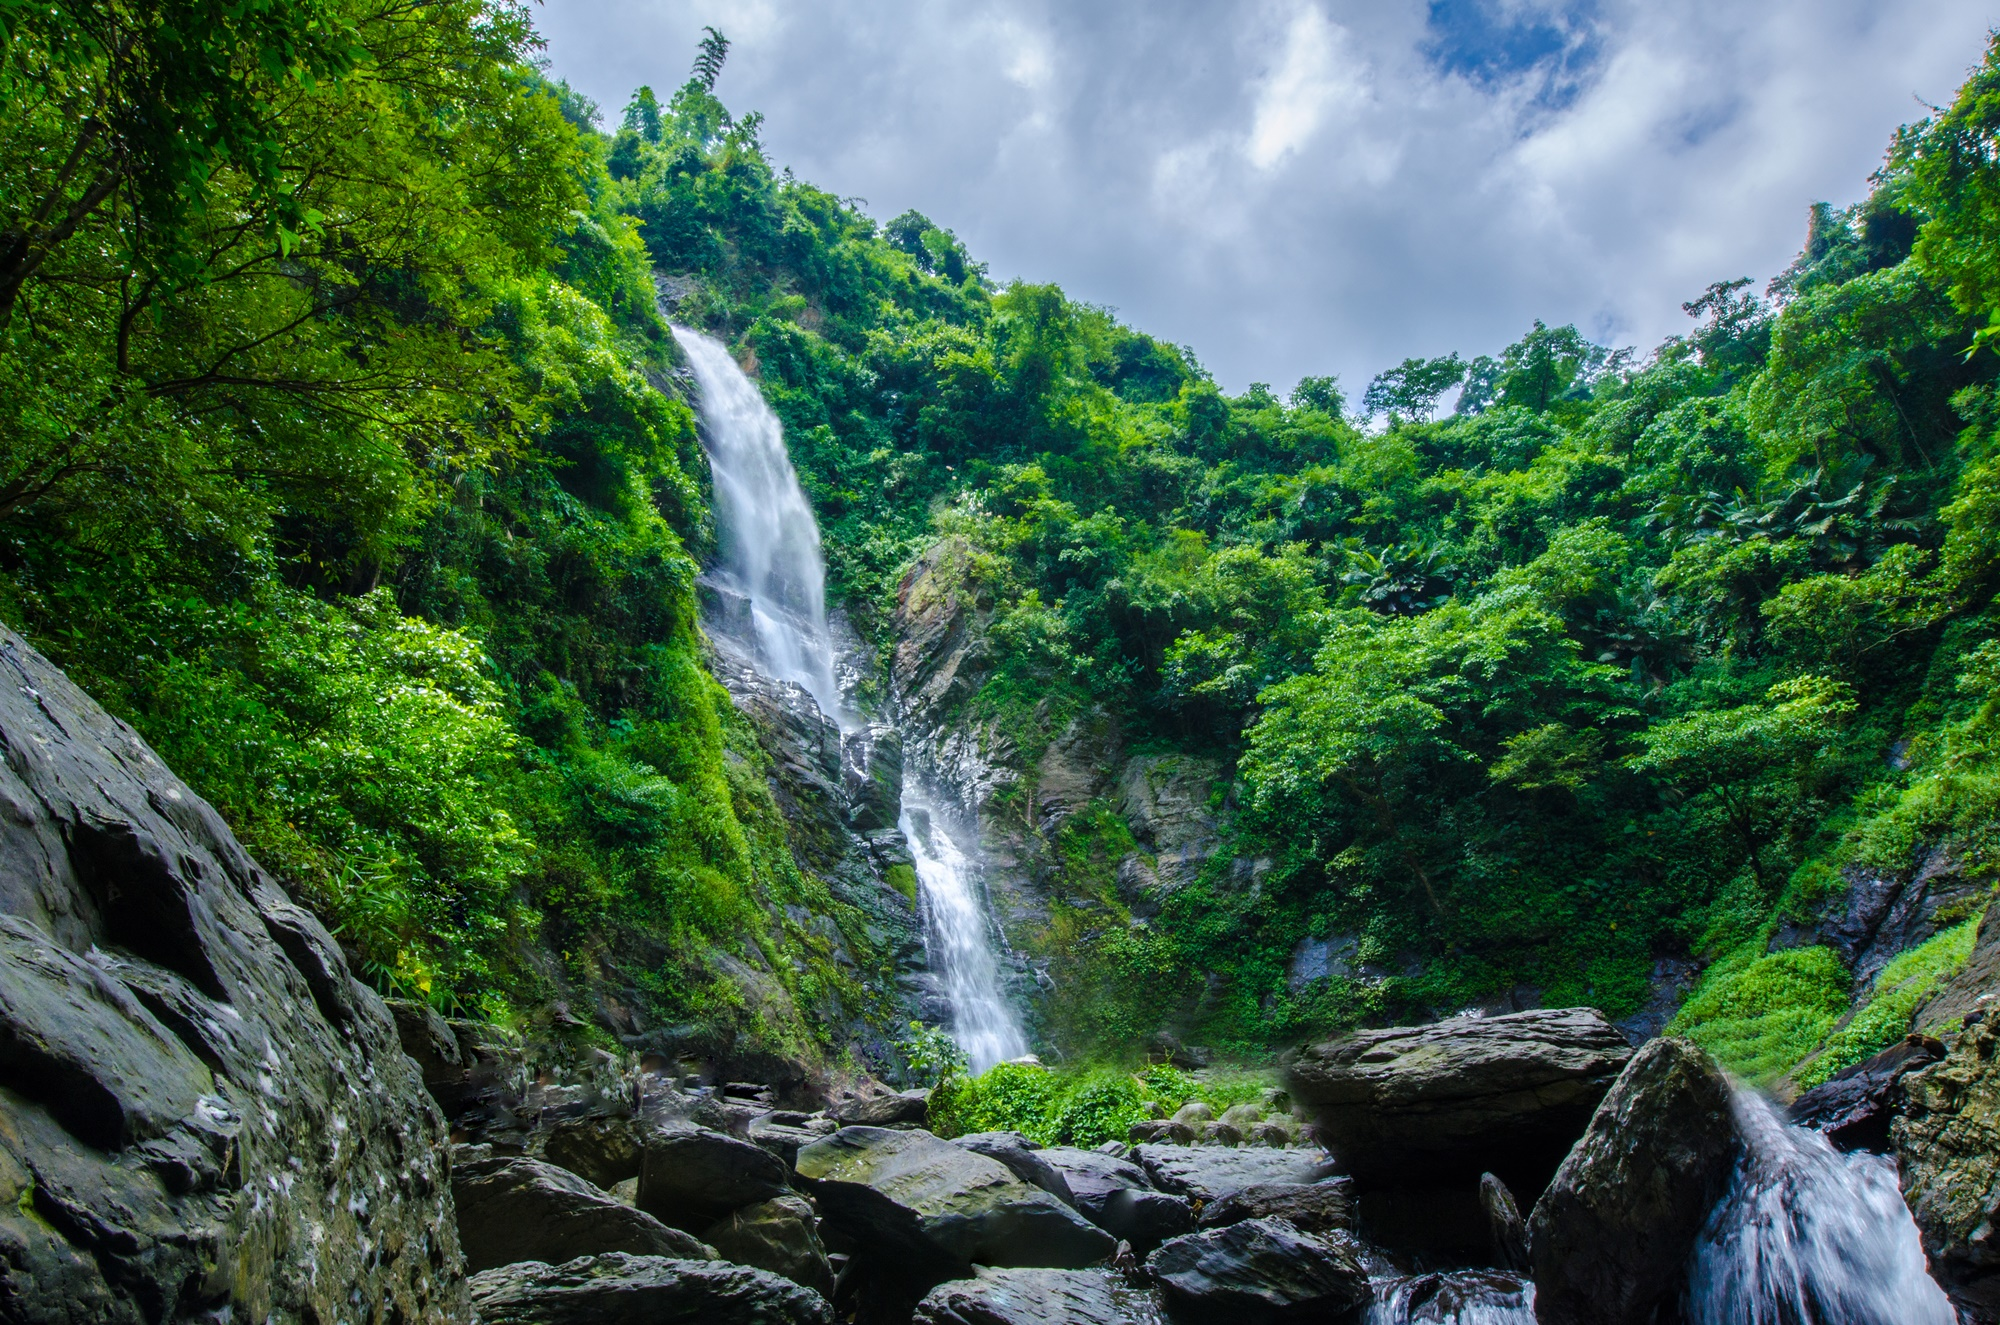 涼山瀑布 Liangshan Waterfall